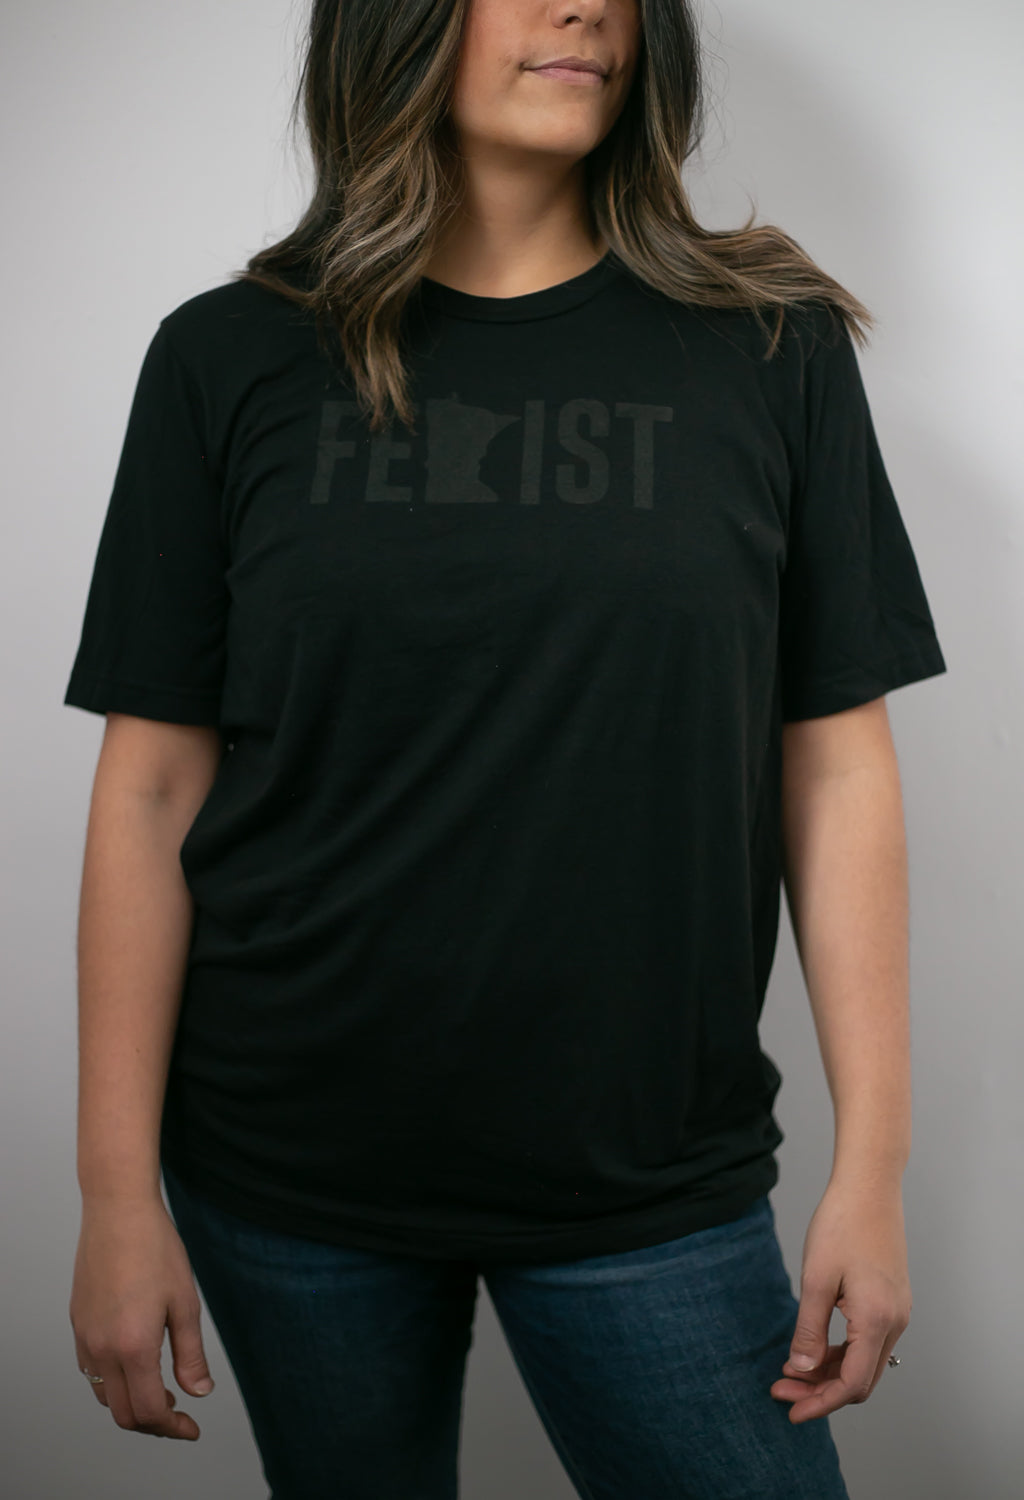 MnFem Black on Black Unisex Tee